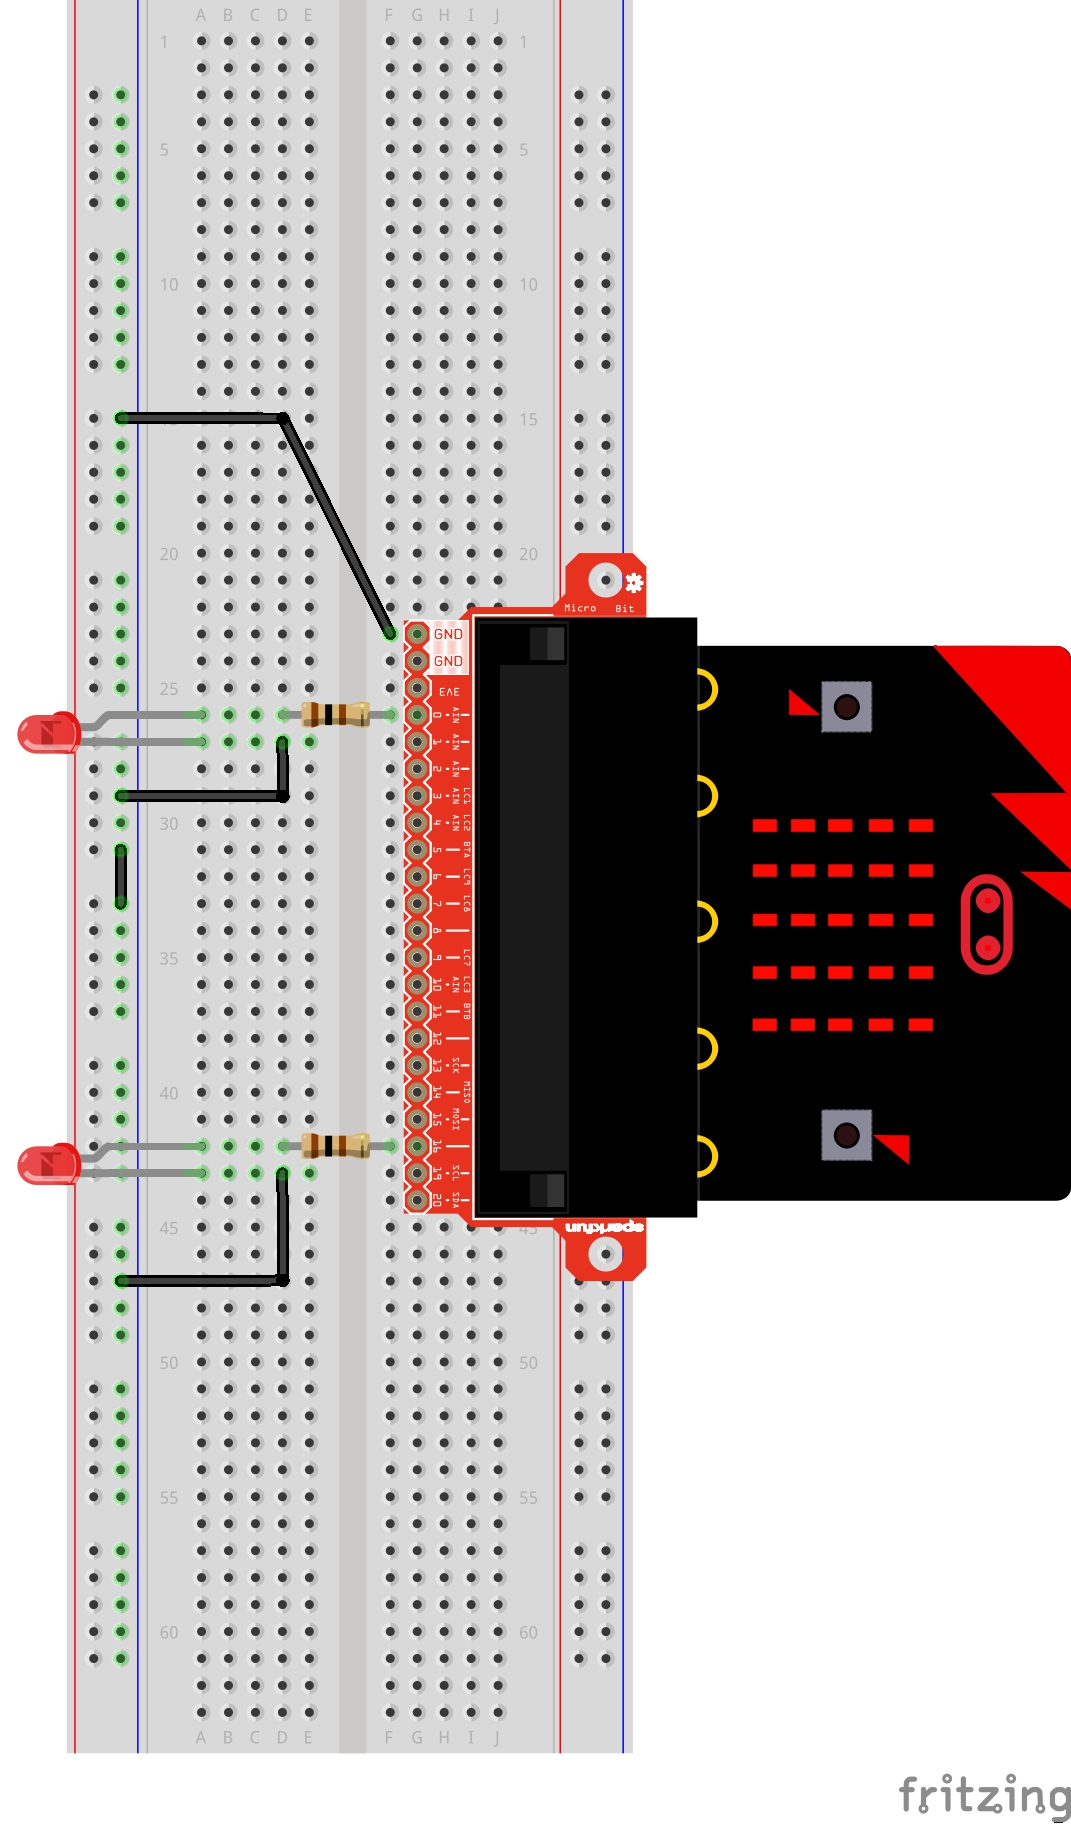 Sparkfun Inventors Kit For Microbit Experiment Guide Learn Digital Compass Circuit Fritzing Diagram Exp 11